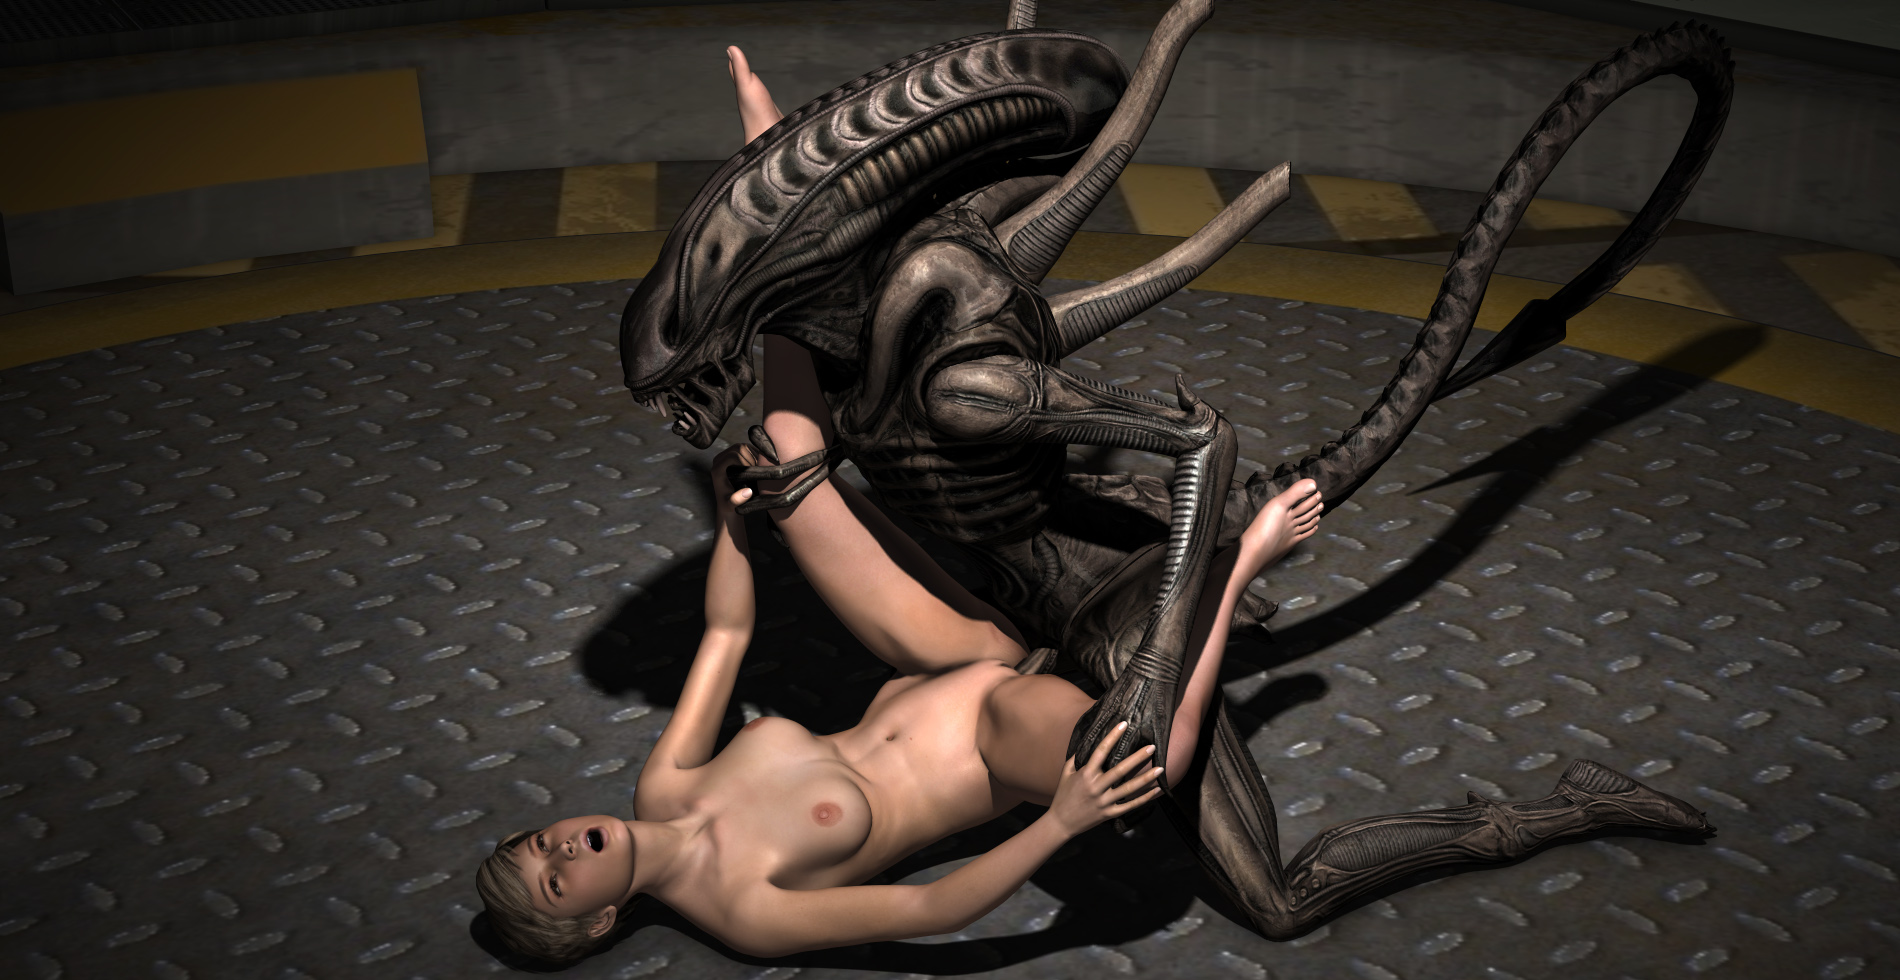 Alien And Human Sex 36